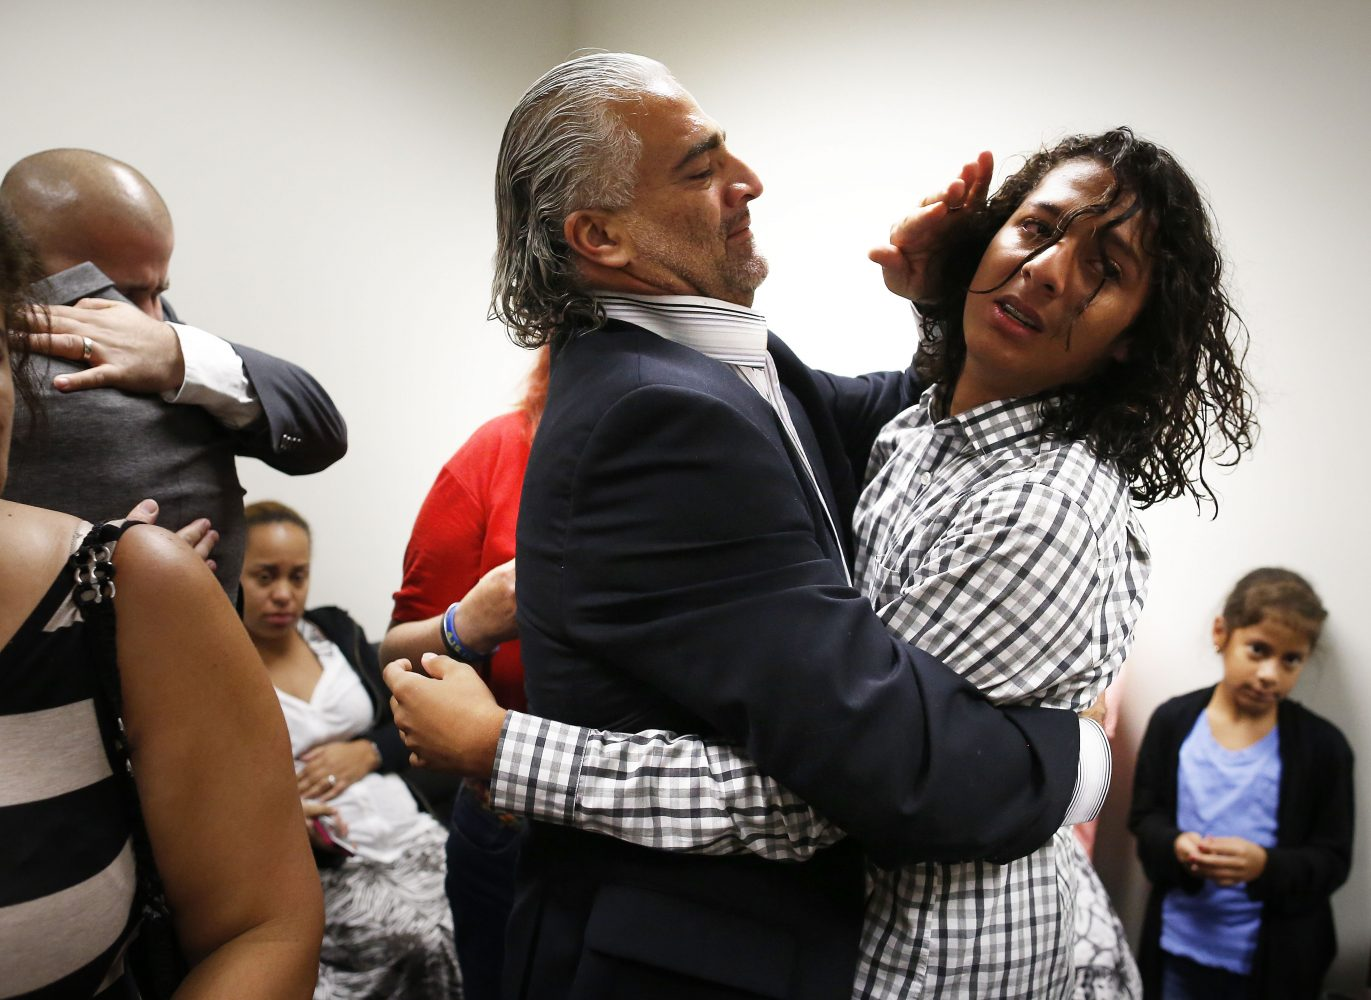 Diego Aguilar, the uncle of slain University of Florida student Christian Aguilar, hugs his son Diego in the family's private room following the guilty verdict of Pedro Bravo at the Alachua County Criminal Justice Center Friday, August 15, 2014.  Bravo was found guilty of first degree murder. (Doug Finger/The Gainesville Sun/Pool)